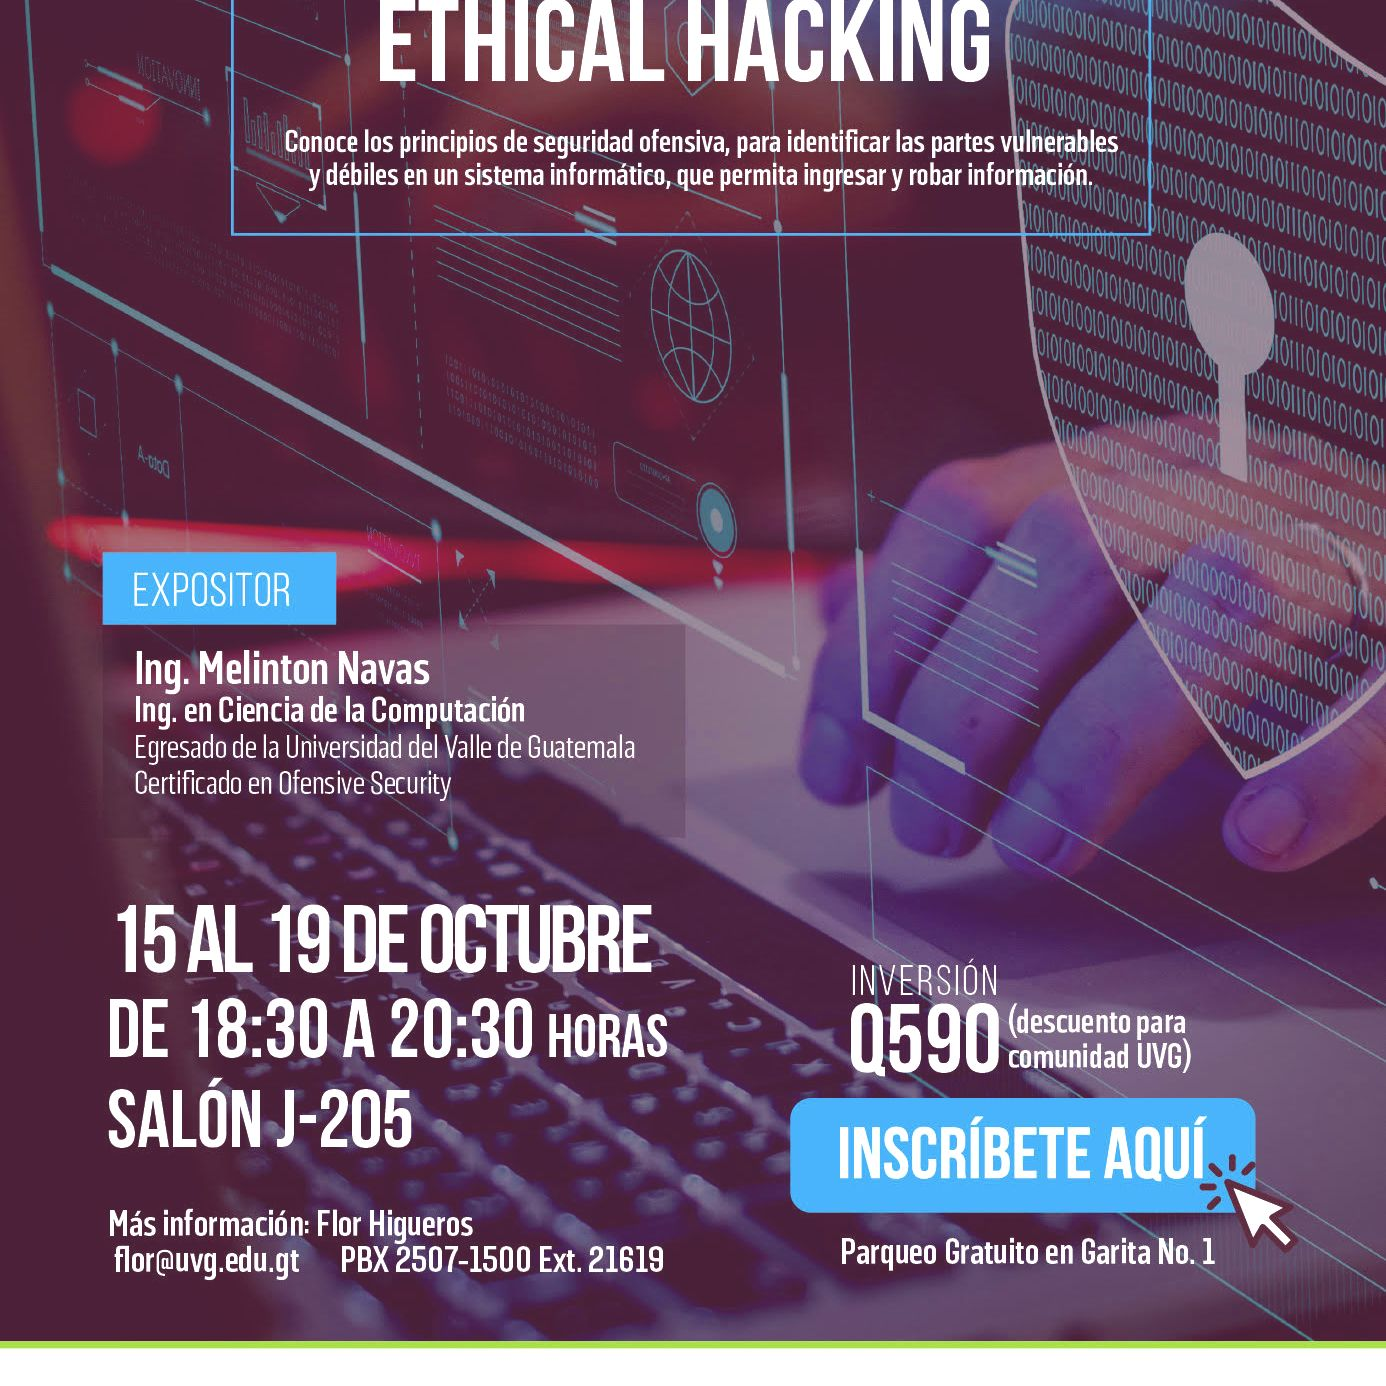 Introducción a ETHICAL HACKING